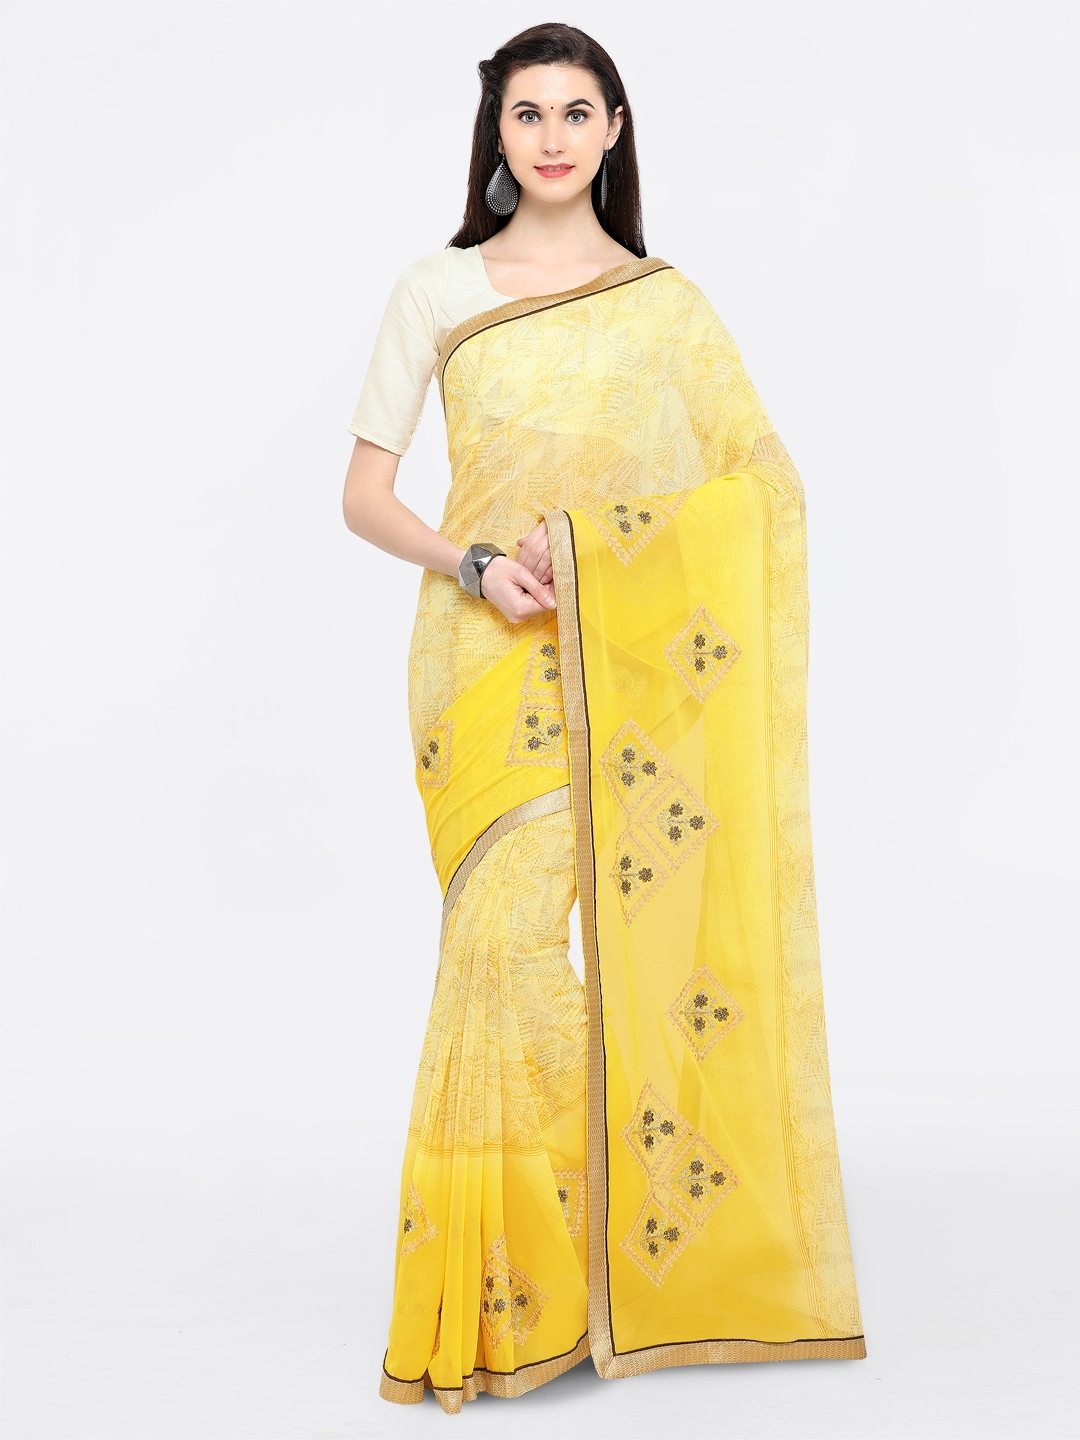 ff9ceef5a41 Buy Triveni Yellow Printed Pure Georgette Saree - Sarees for Women ...